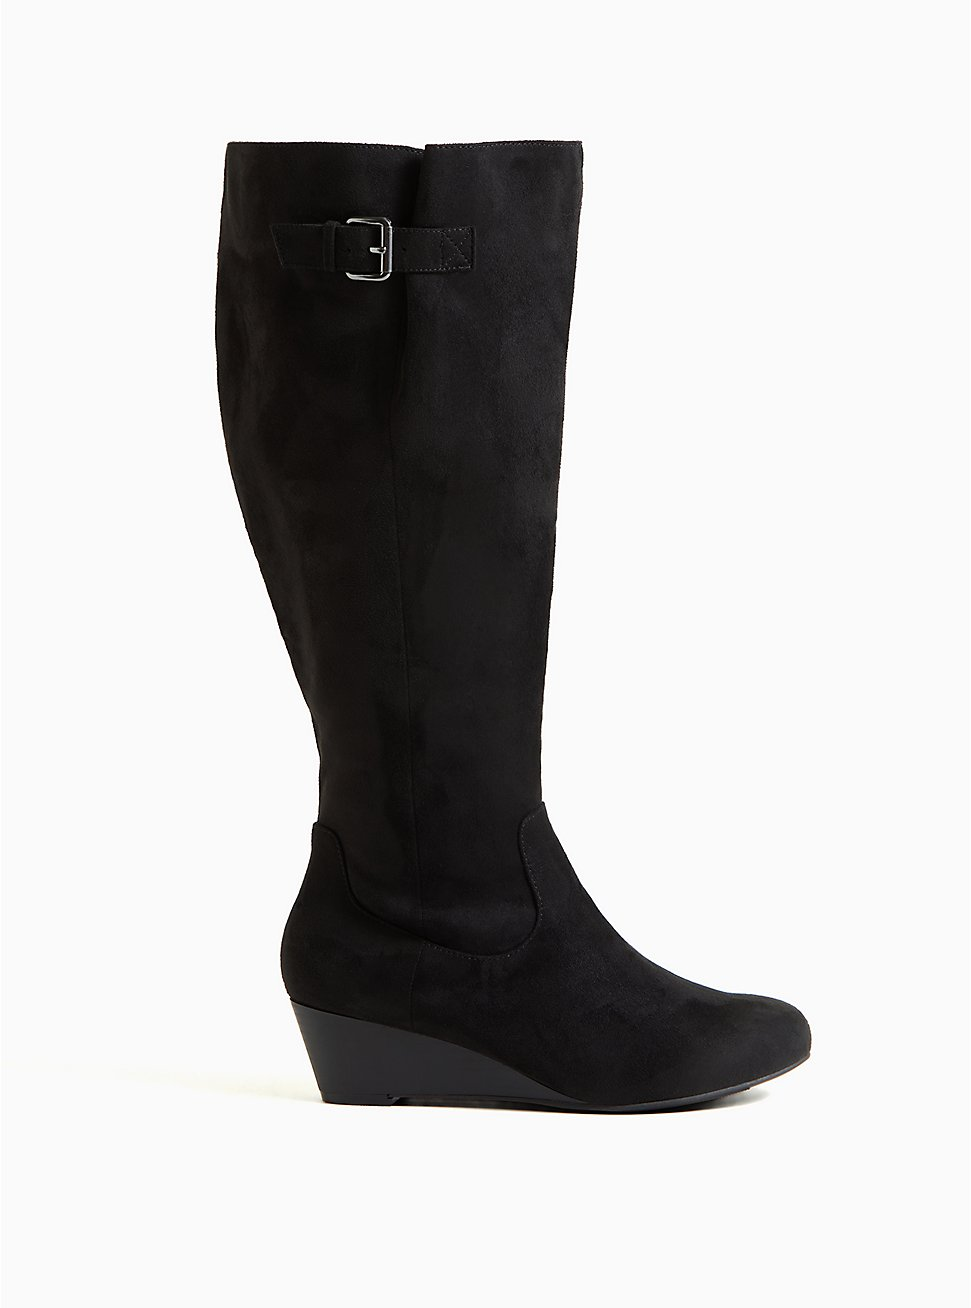 Plus Size Black Faux Suede Wedge Knee-High Boot (WW), BLACK, hi-res